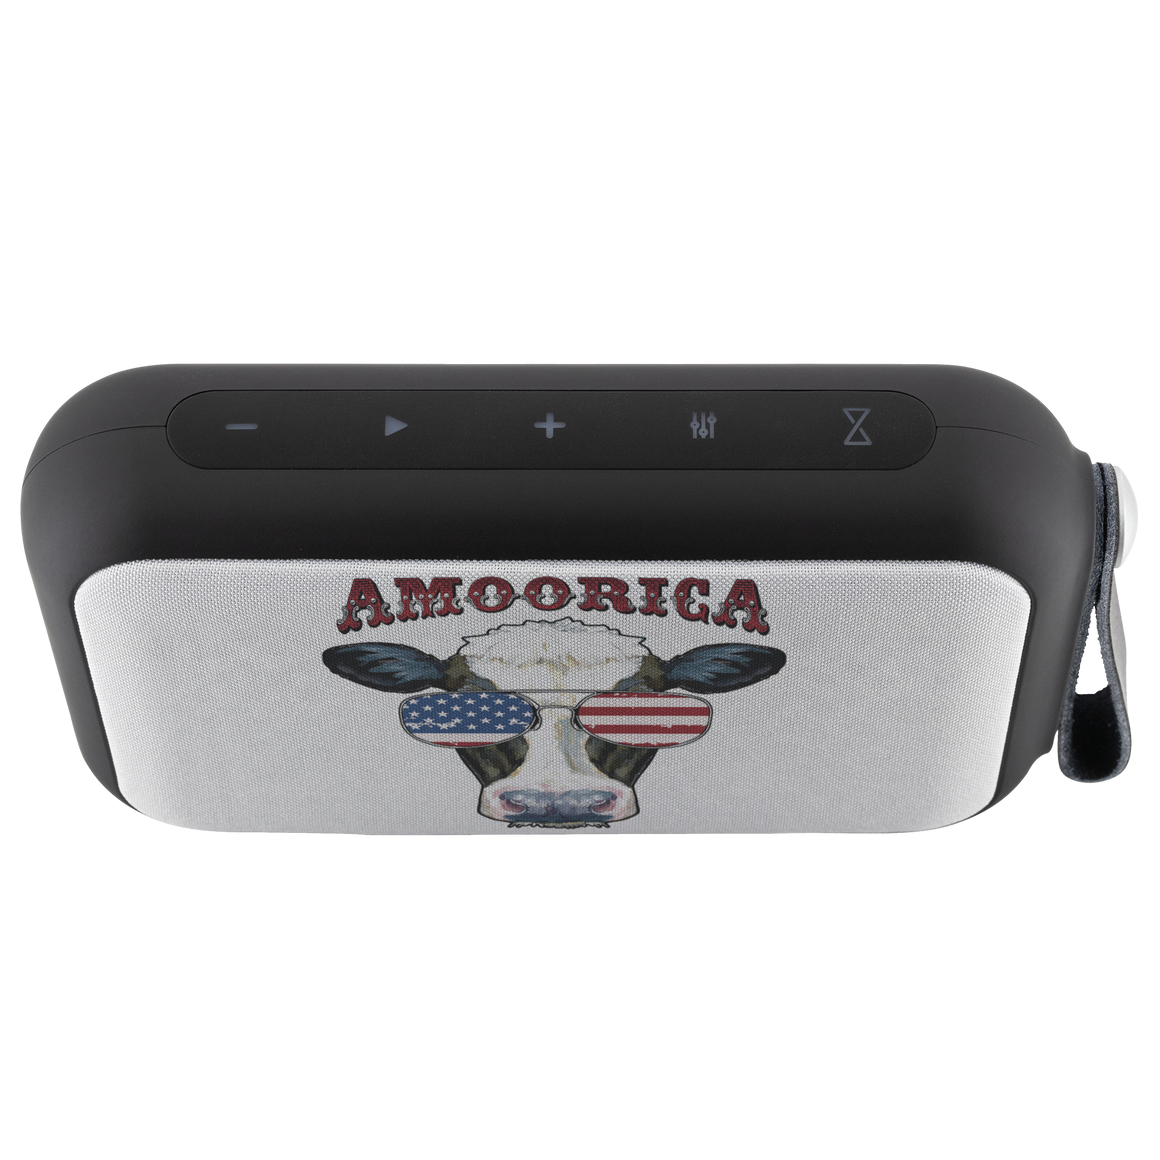 Amoorica bluetooth speaker - cows